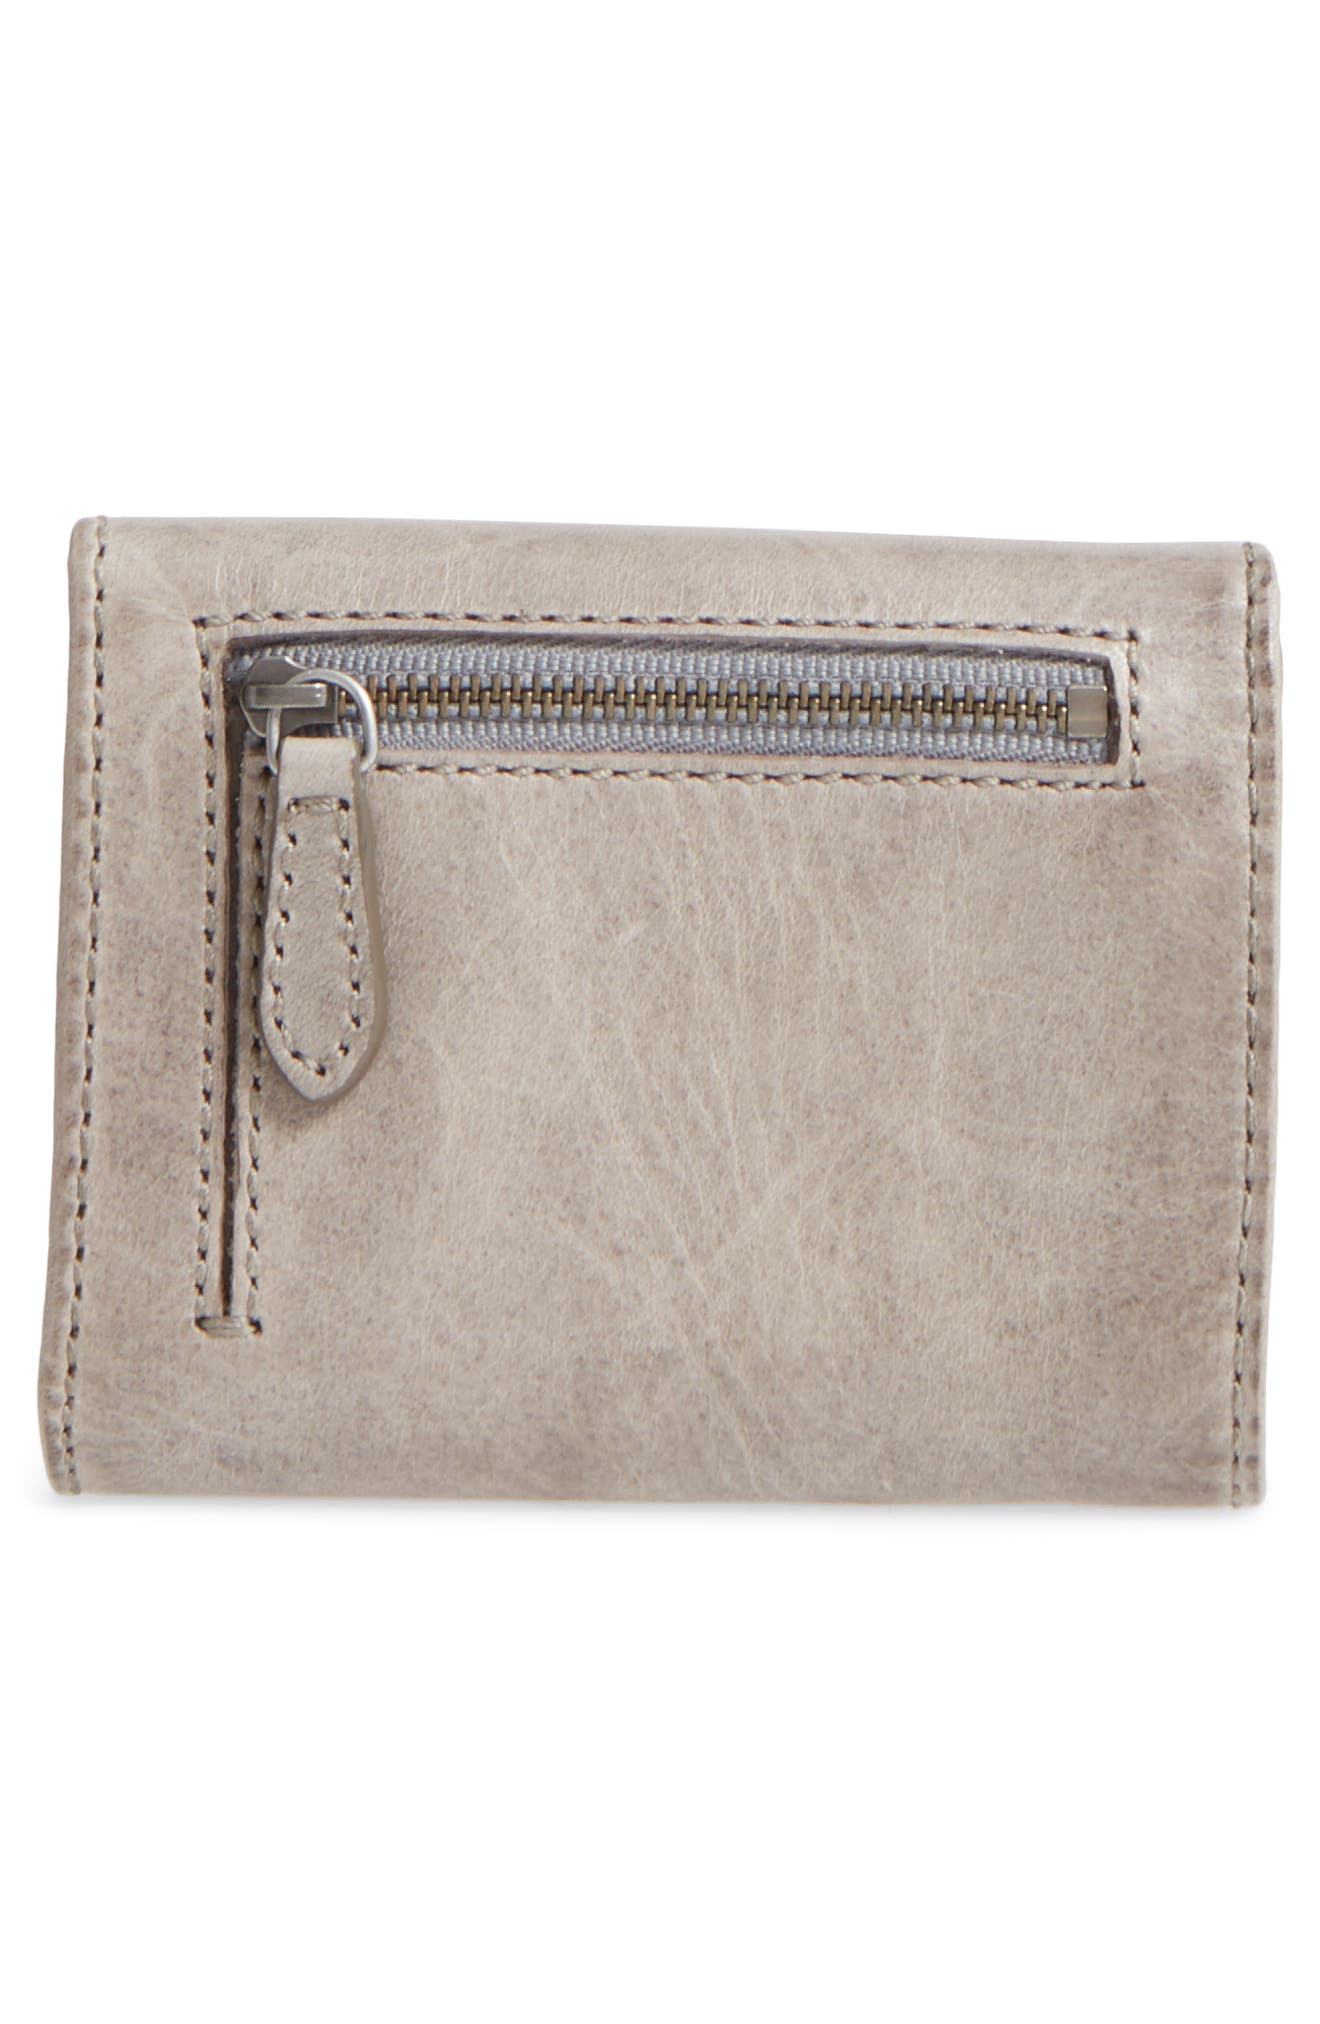 FRYE,                             Melissa Medium Trifold Leather Wallet,                             Alternate thumbnail 4, color,                             020